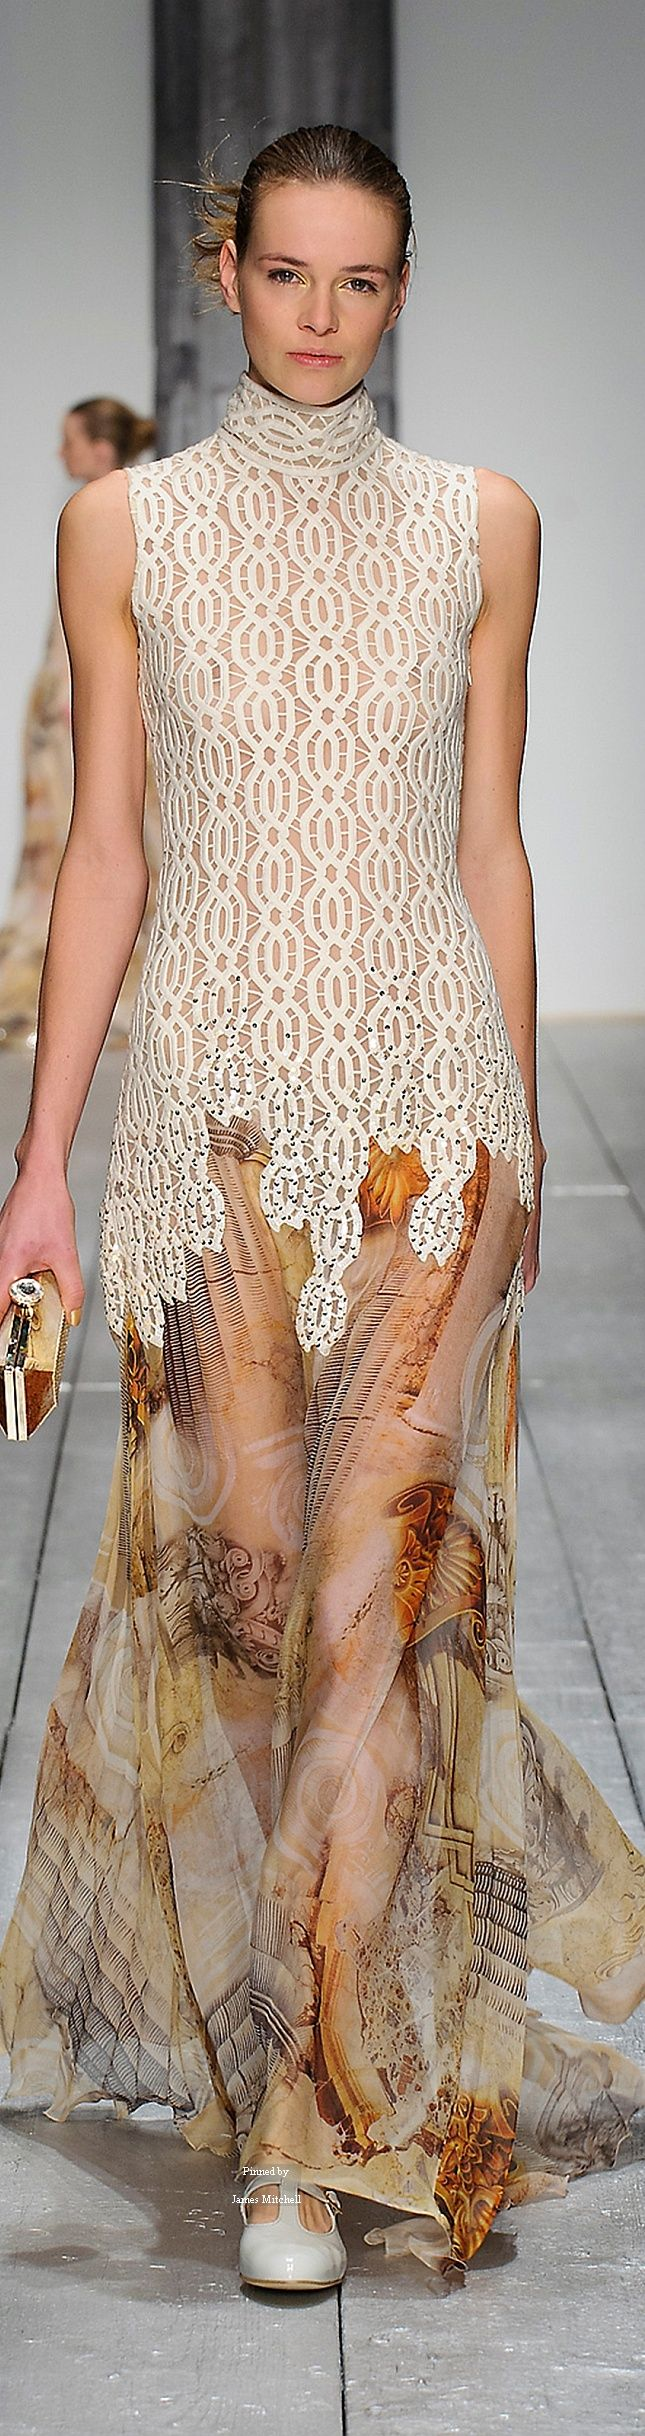 Laura Biagiotti Collections Fall Winter 2015-16 collection